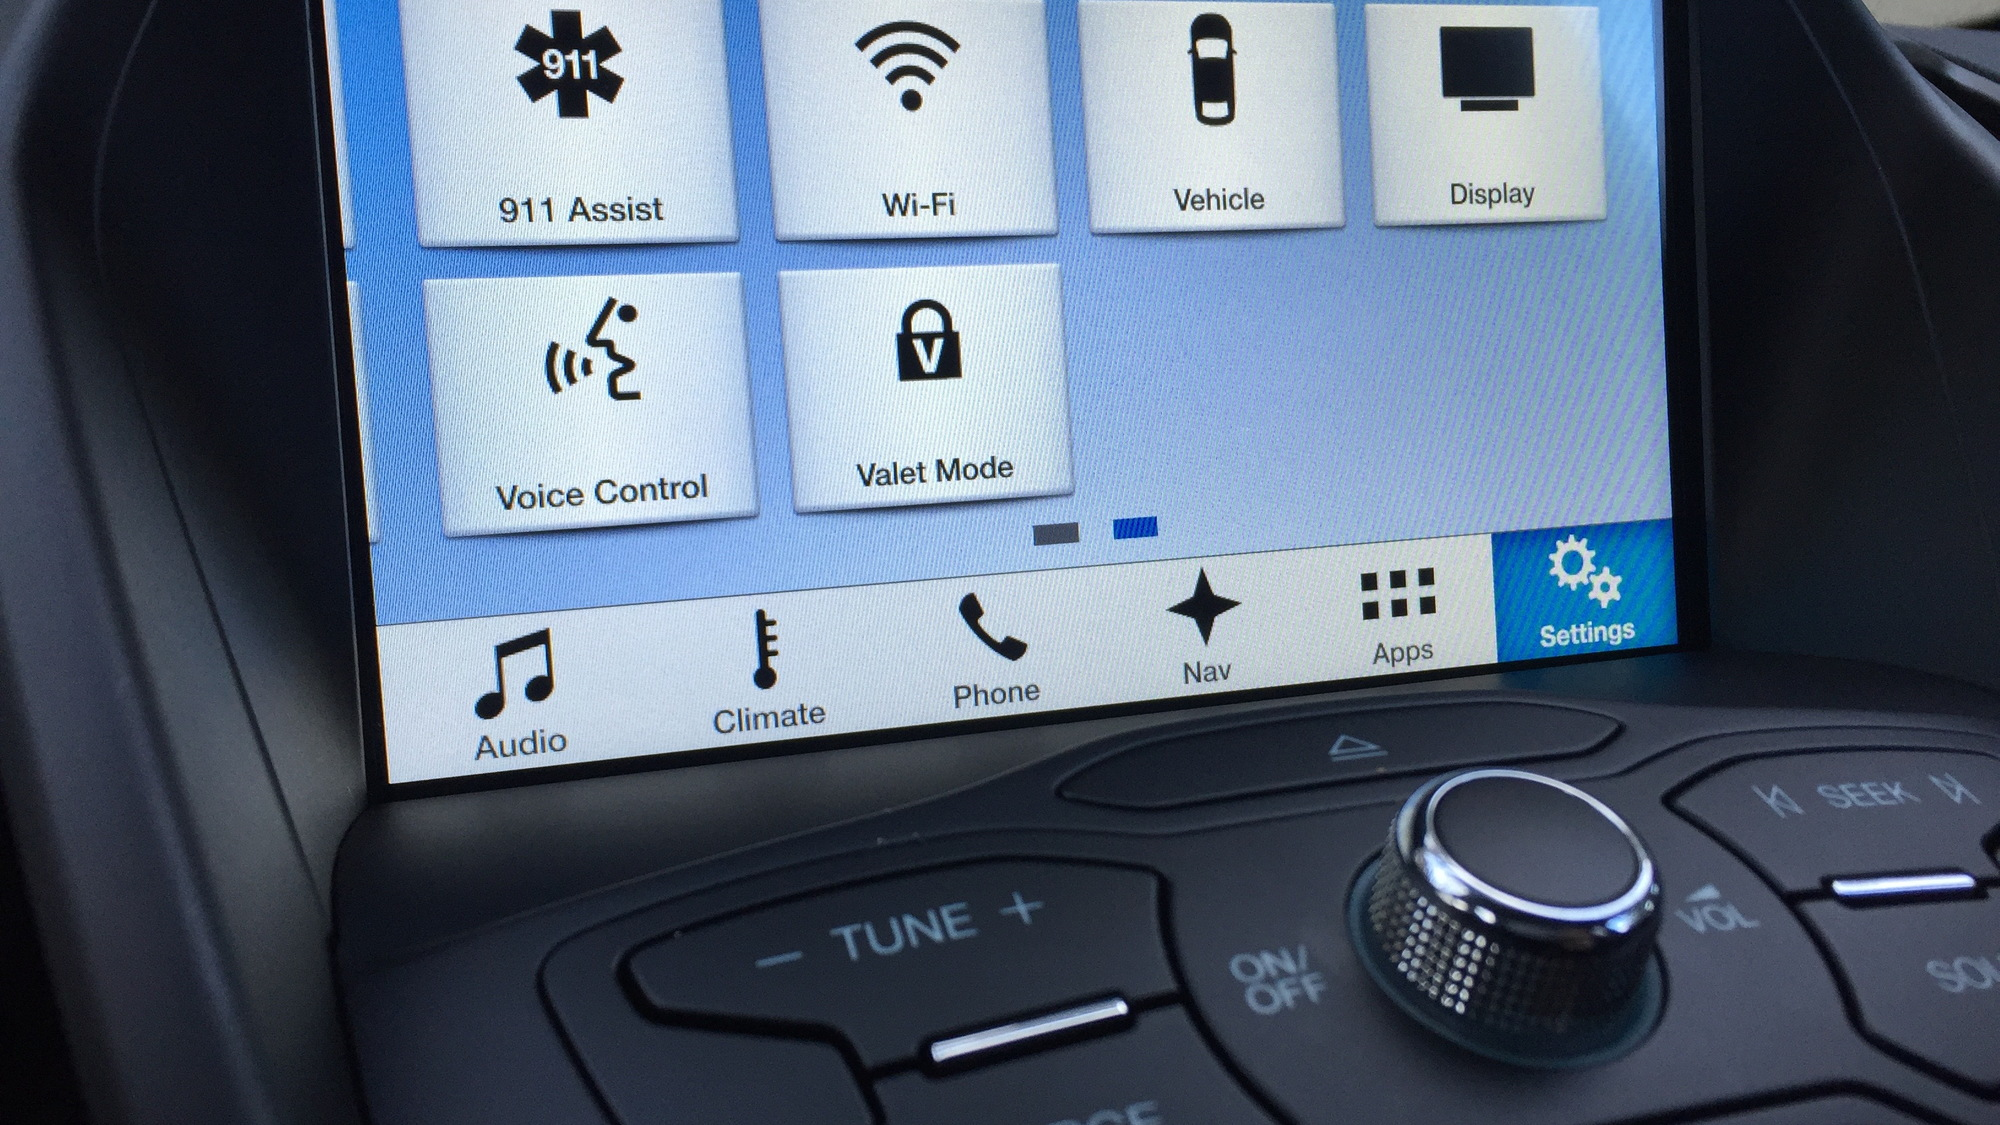 hight resolution of ford s sync 3 infotainment system